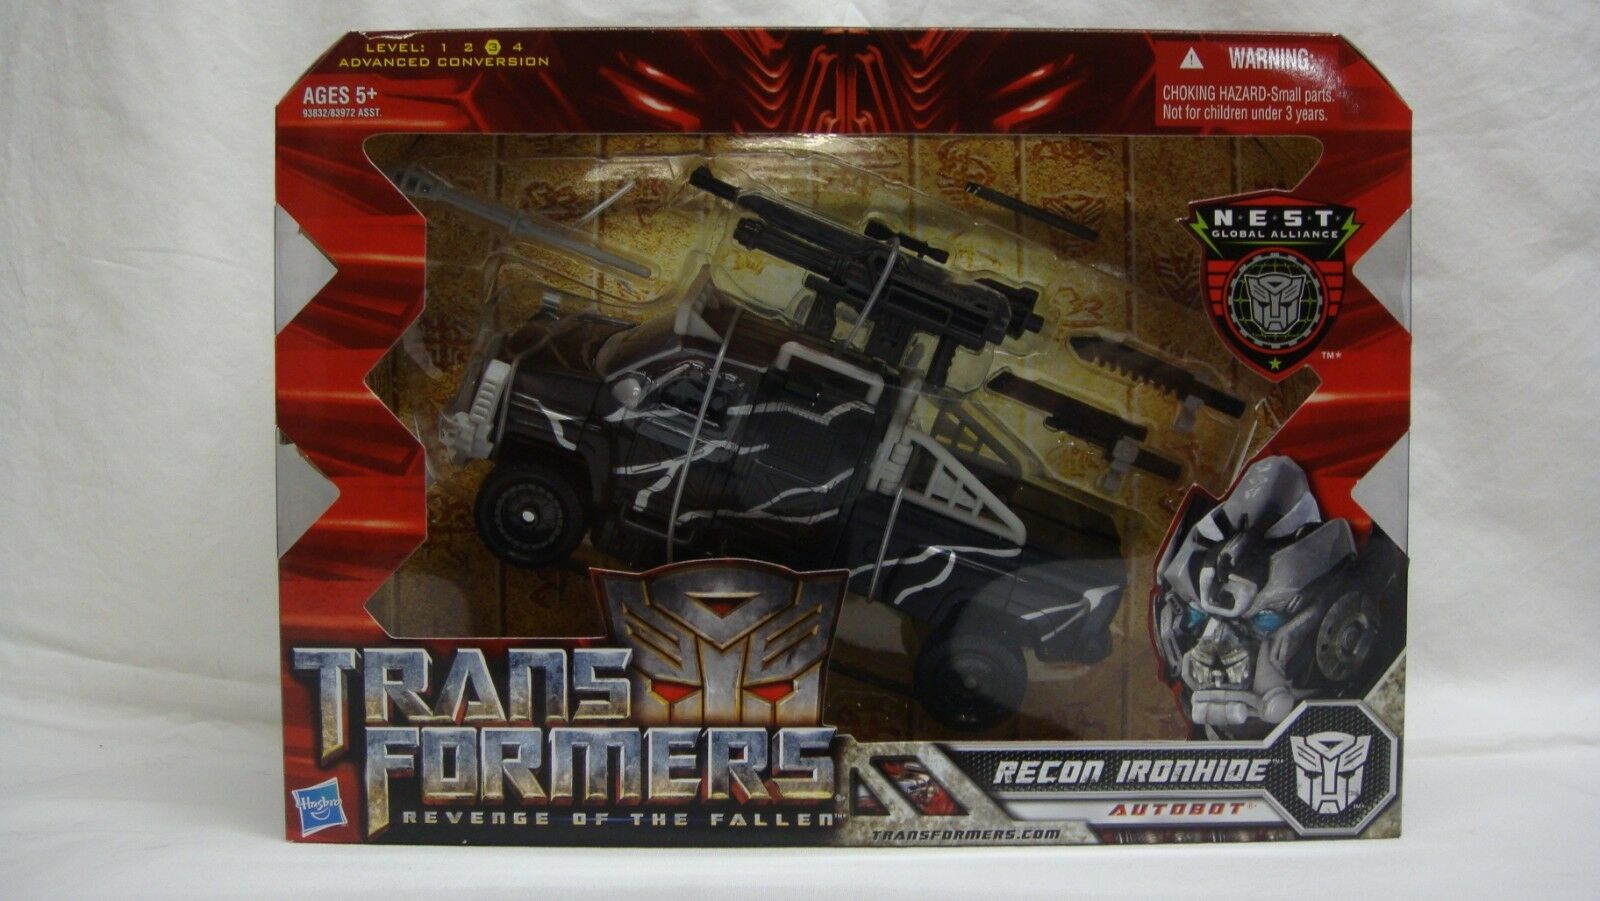 Transformers rougeF Revenge of the Fallen nid Recon Ironhide Voyager neuf scellé